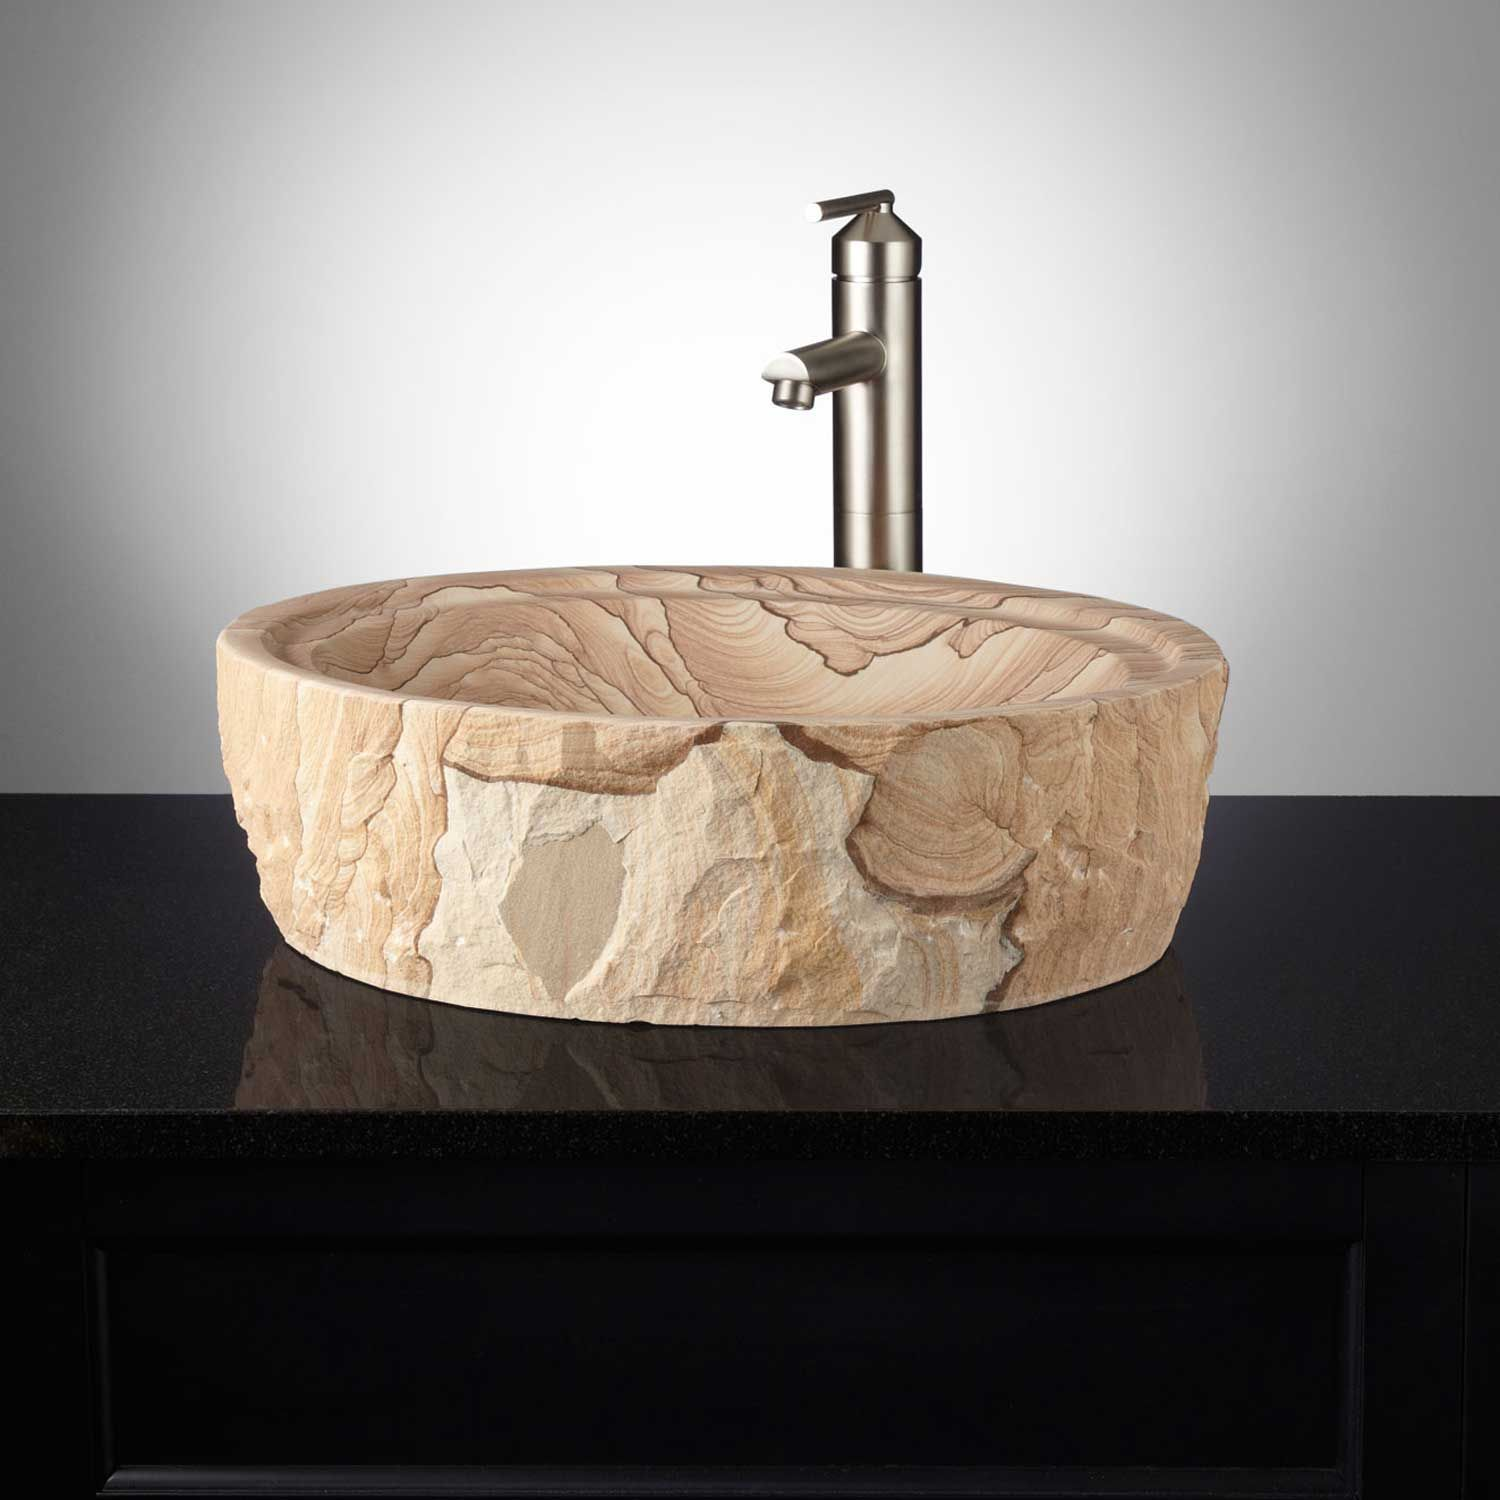 Sandstone's characteristic light brown and tan swirls distinguish this outstanding vessel sink, which is further enhanced by a chiseled exterior. | Sandstone Vessel Sink In Chiseled Edge | Signature Hardware #homedecor #decorideas